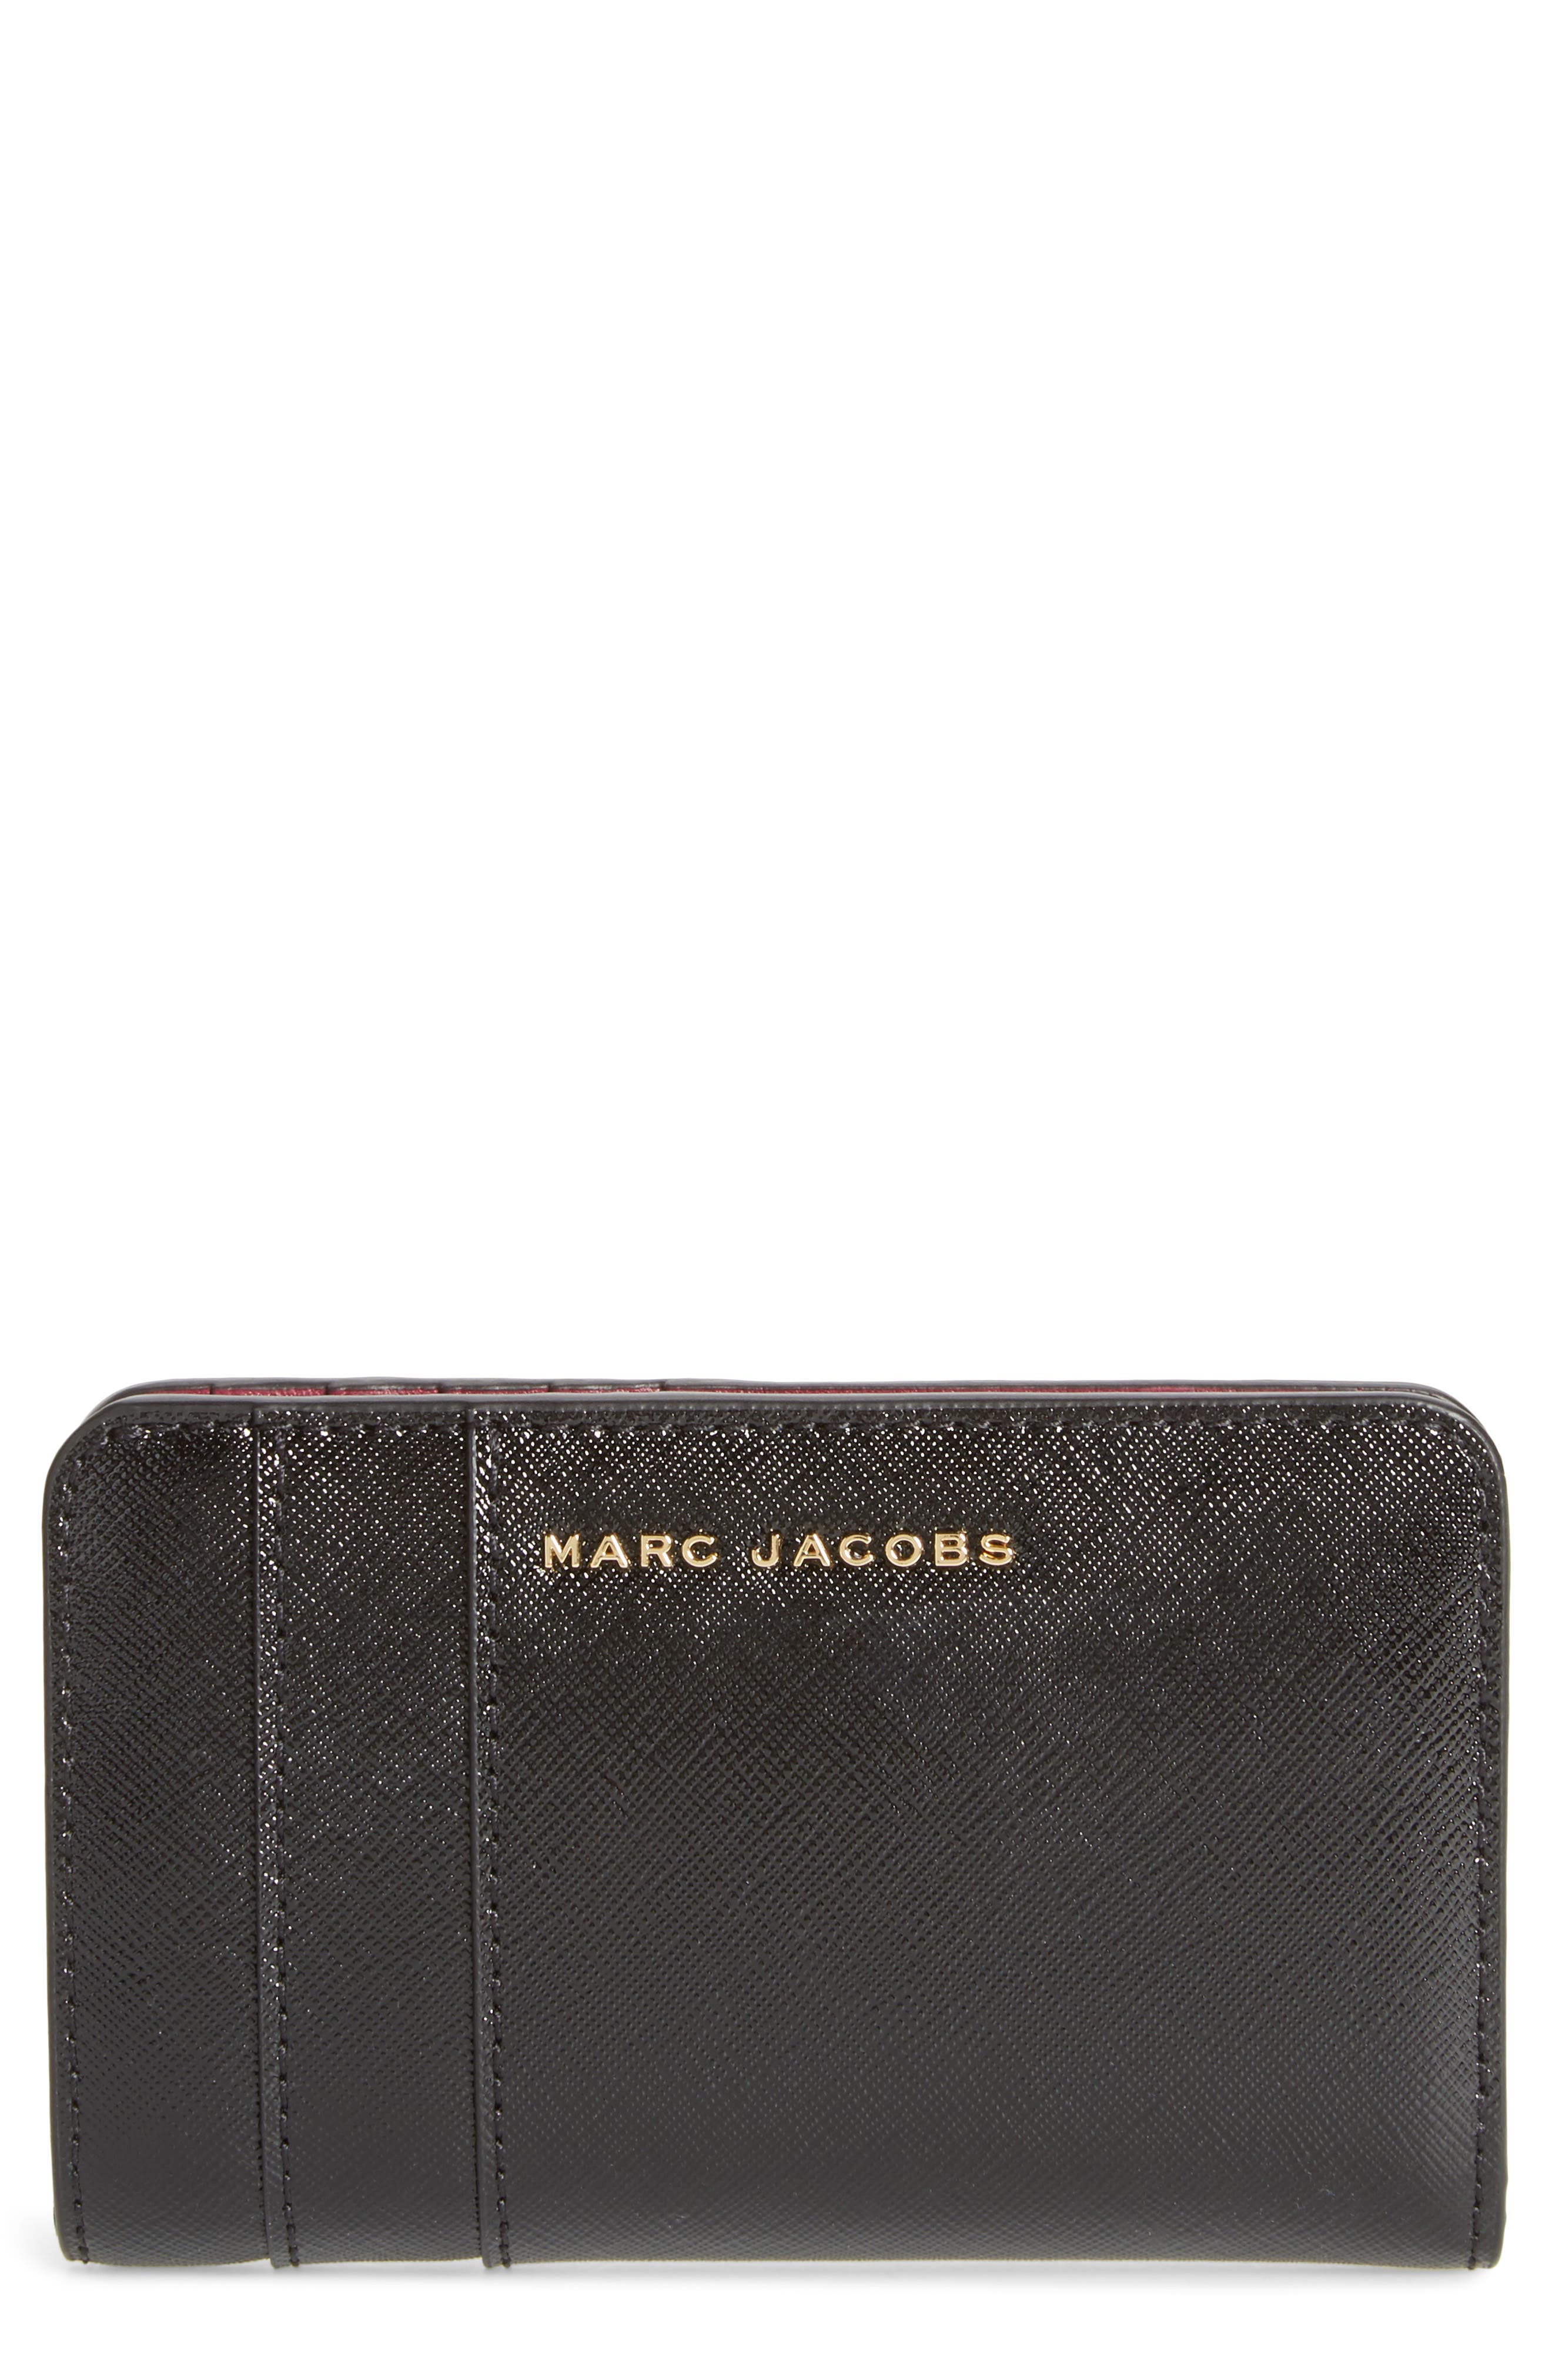 Saffiano Leather Compact Wallet,                         Main,                         color, 001